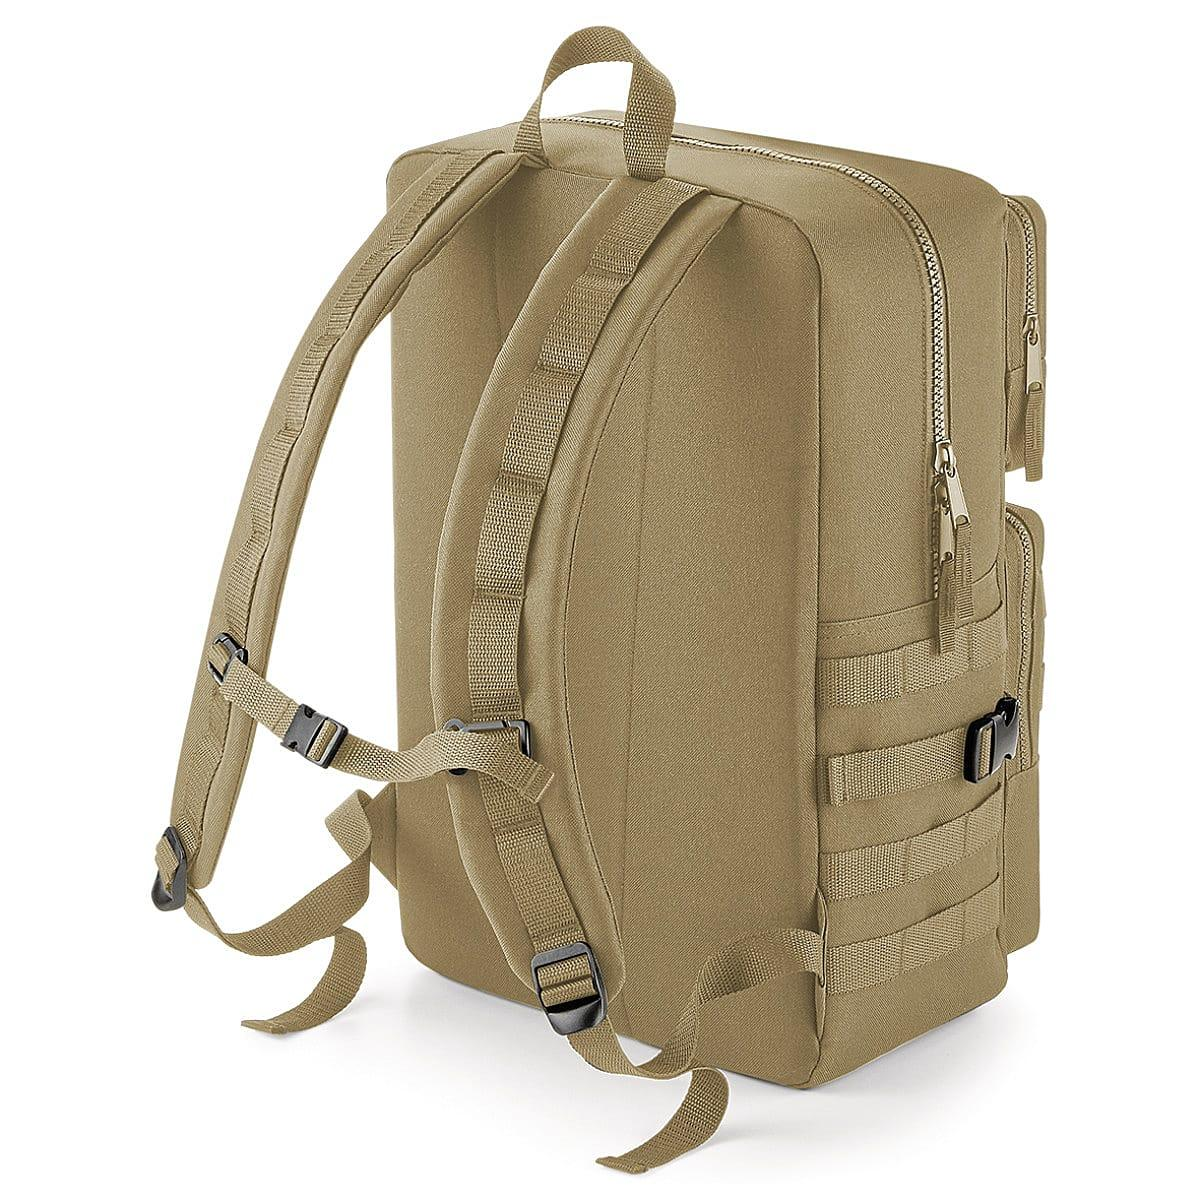 Bagbase Molle Tachtical Backpack in Desert Sand (Product Code: BG848)